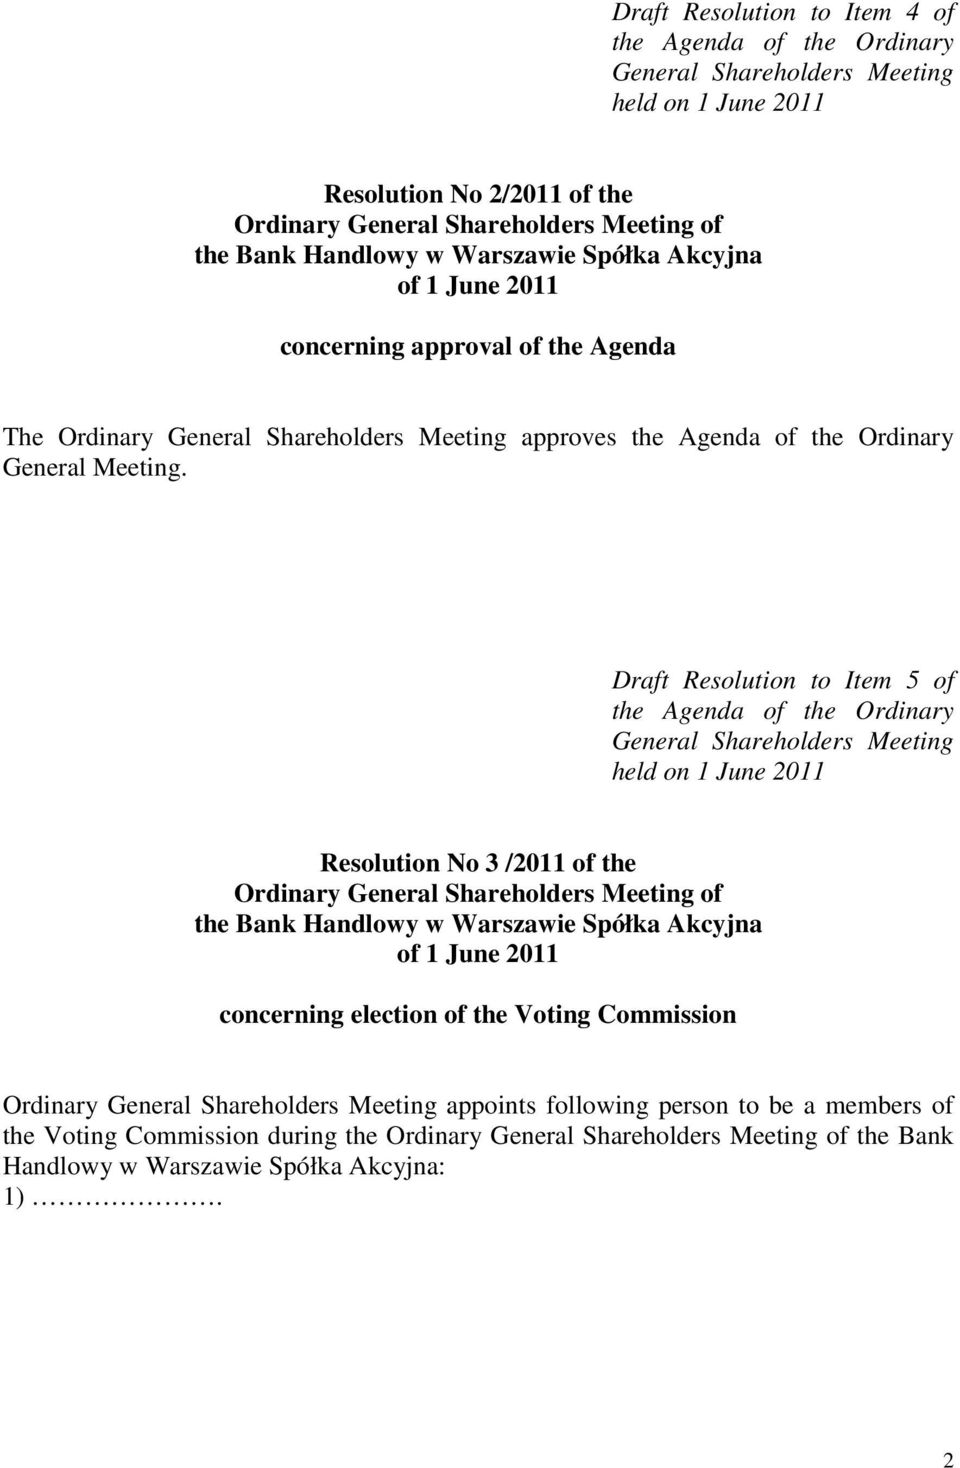 Draft Resolution to Item 5 of the Agenda of the Ordinary General Shareholders Meeting held on 1 June 2011 Resolution No 3 /2011 of the of the Bank Handlowy w